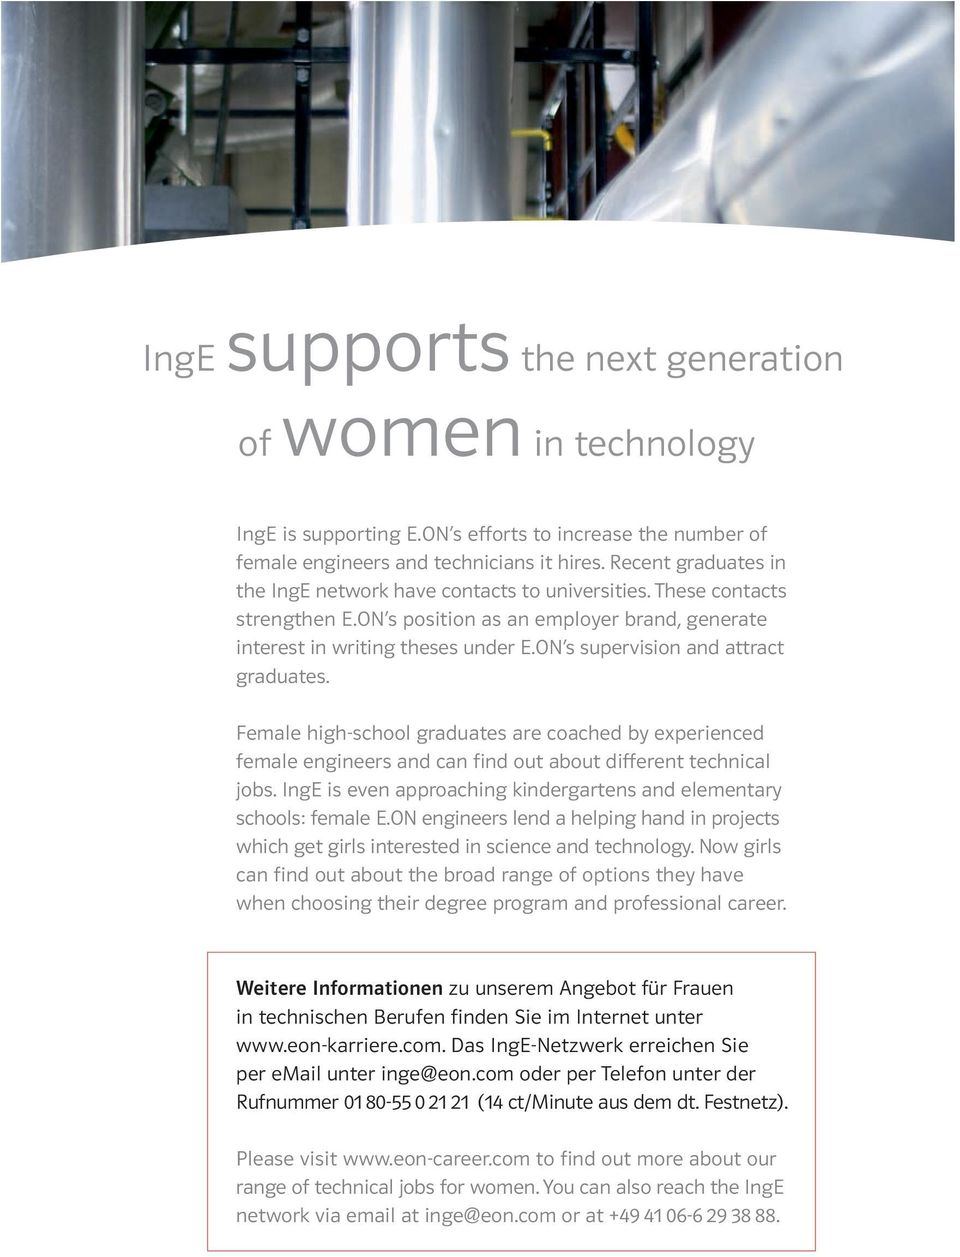 ON s supervision and attract graduates. Female high-school graduates are coached by experienced female engineers and can find out about different technical jobs.